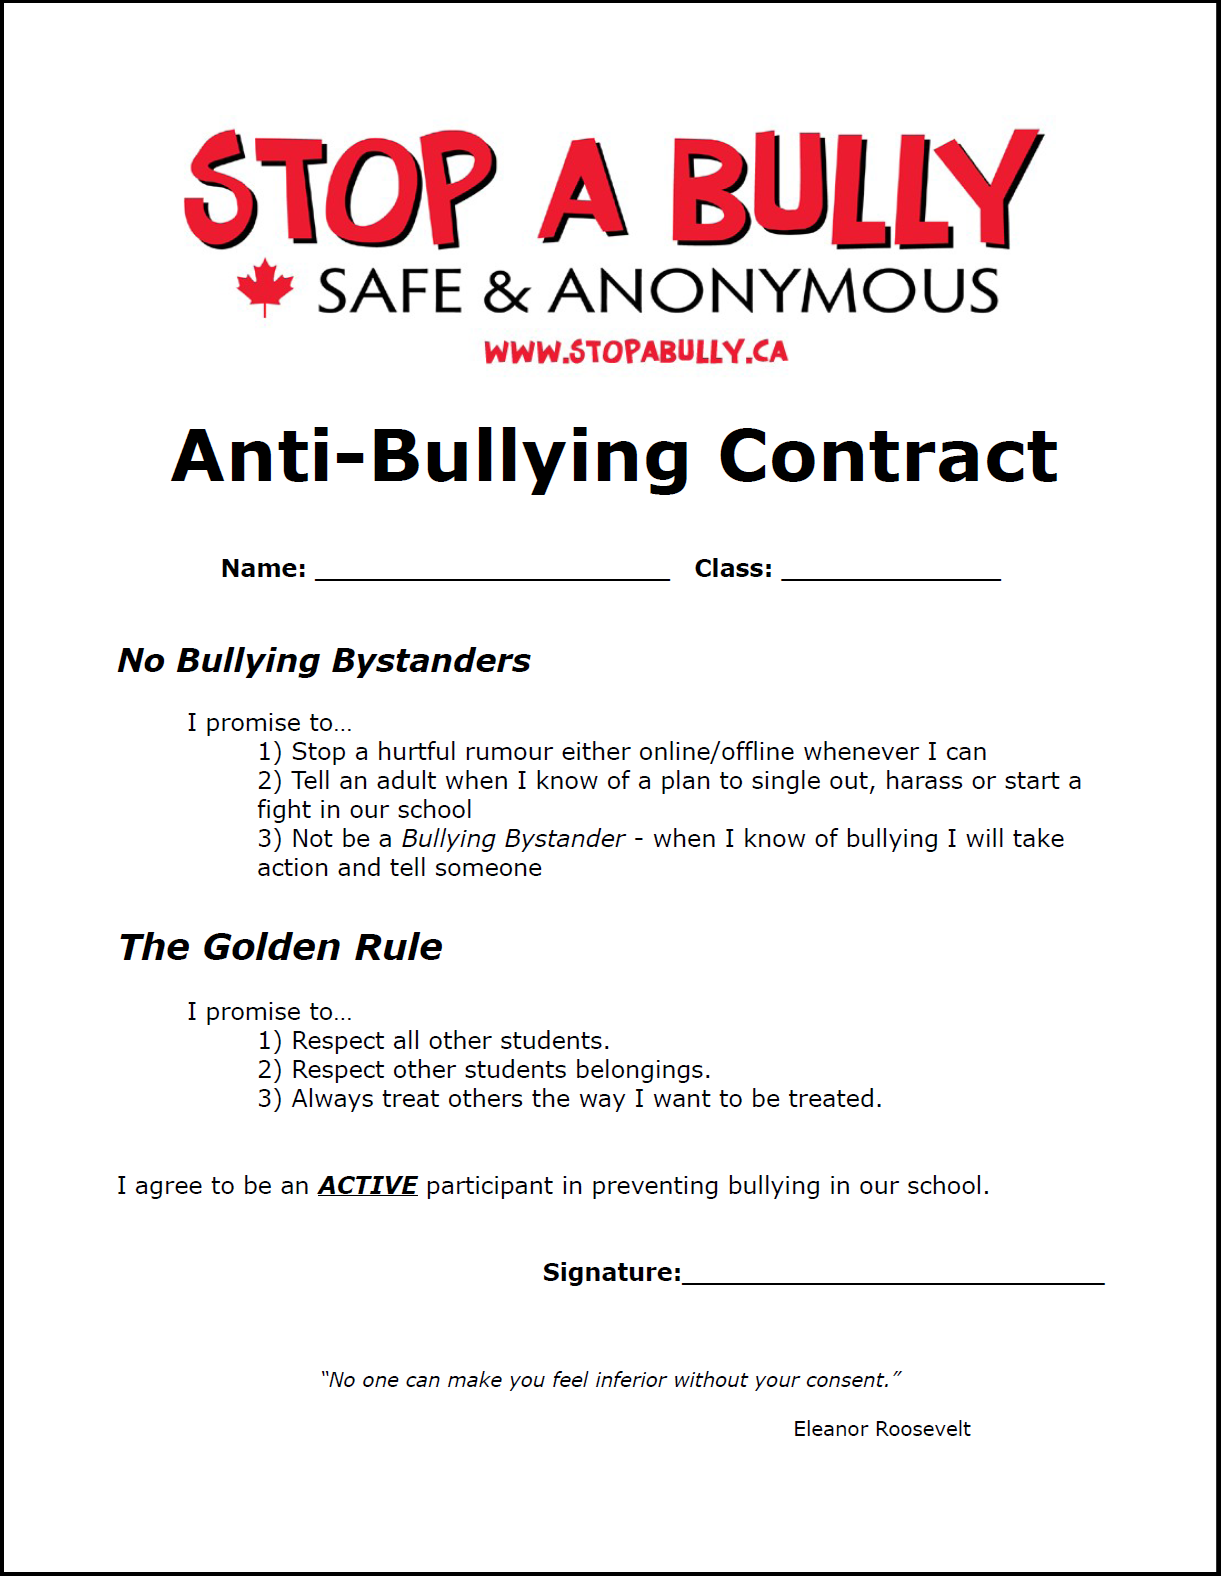 AntiBullying Contract Fun And Interesting Idea To Make Students